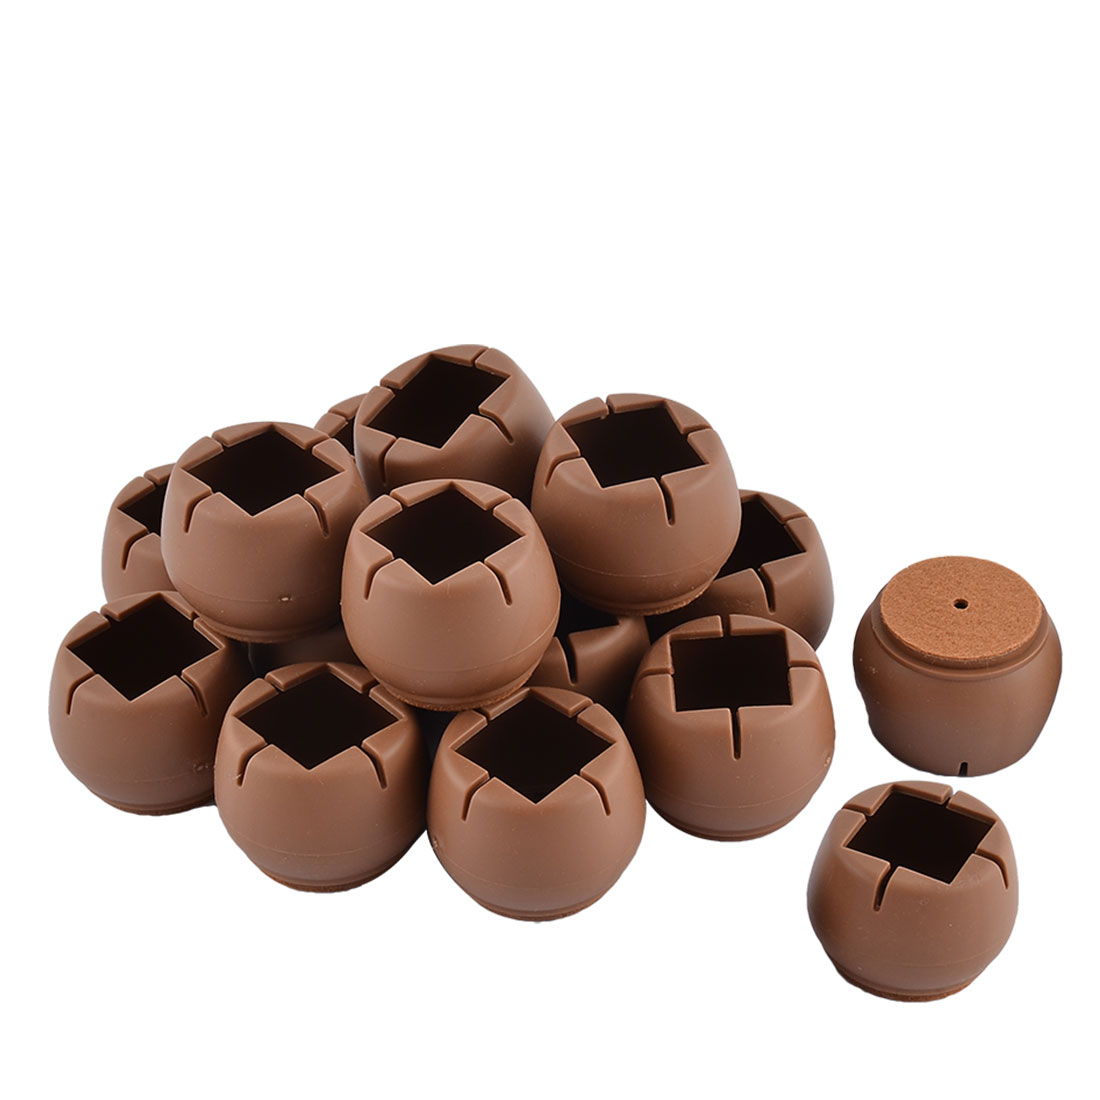 Silicone Round Bottom Table Leg Cover Wood Floor Protector Coffee Color 4.6 x 3.5cm 16pcs